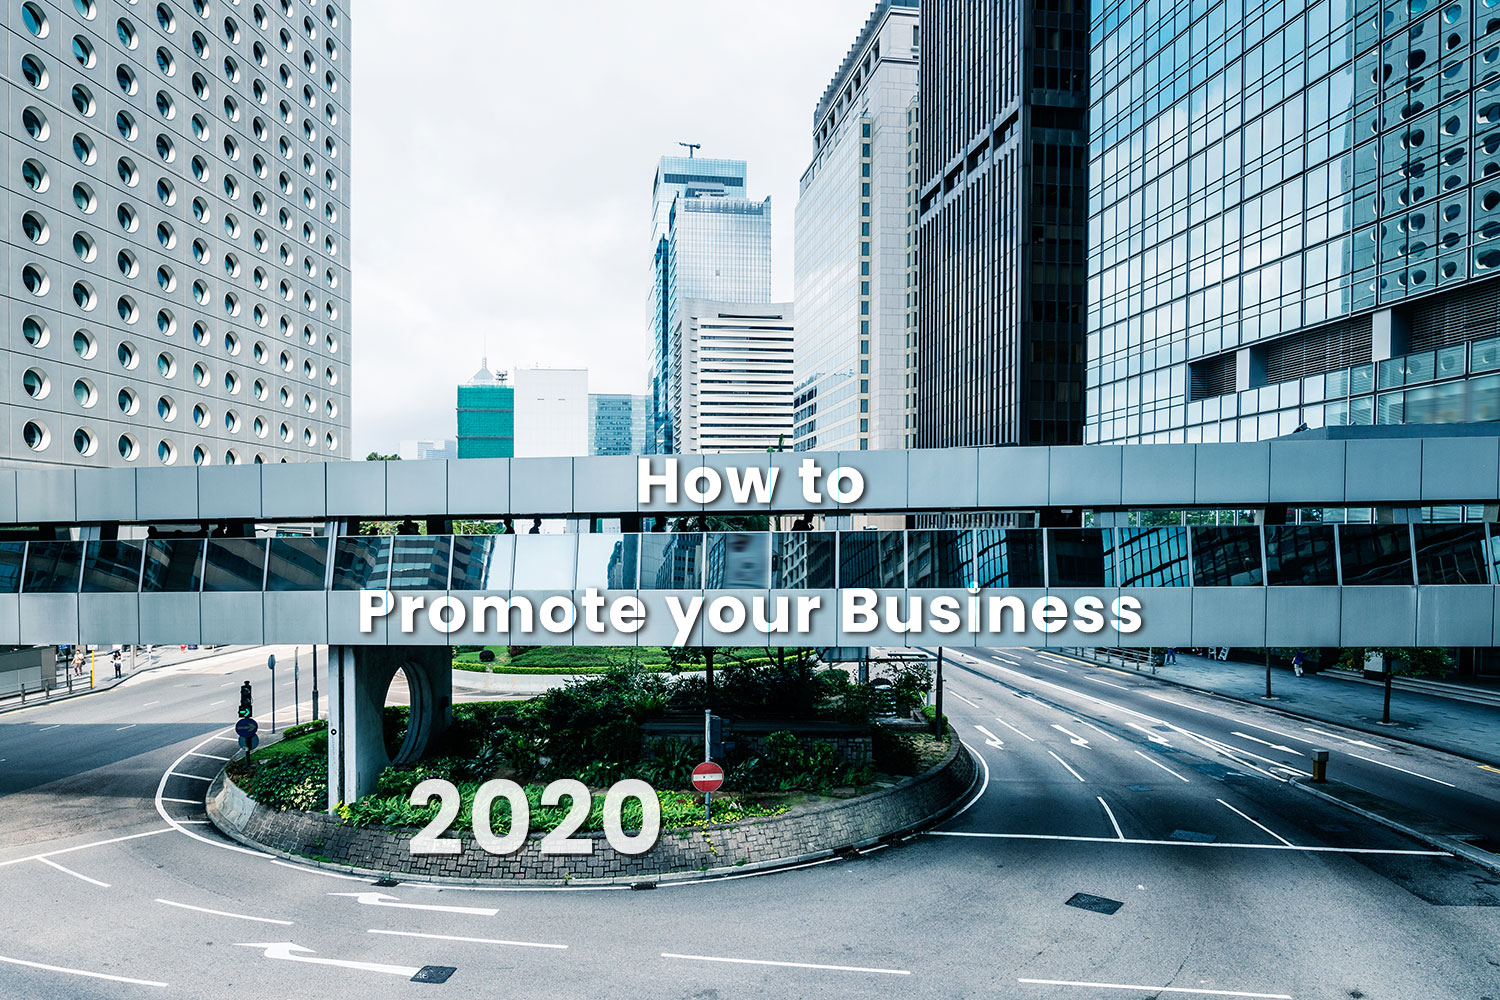 How to Promote your Business in 2020